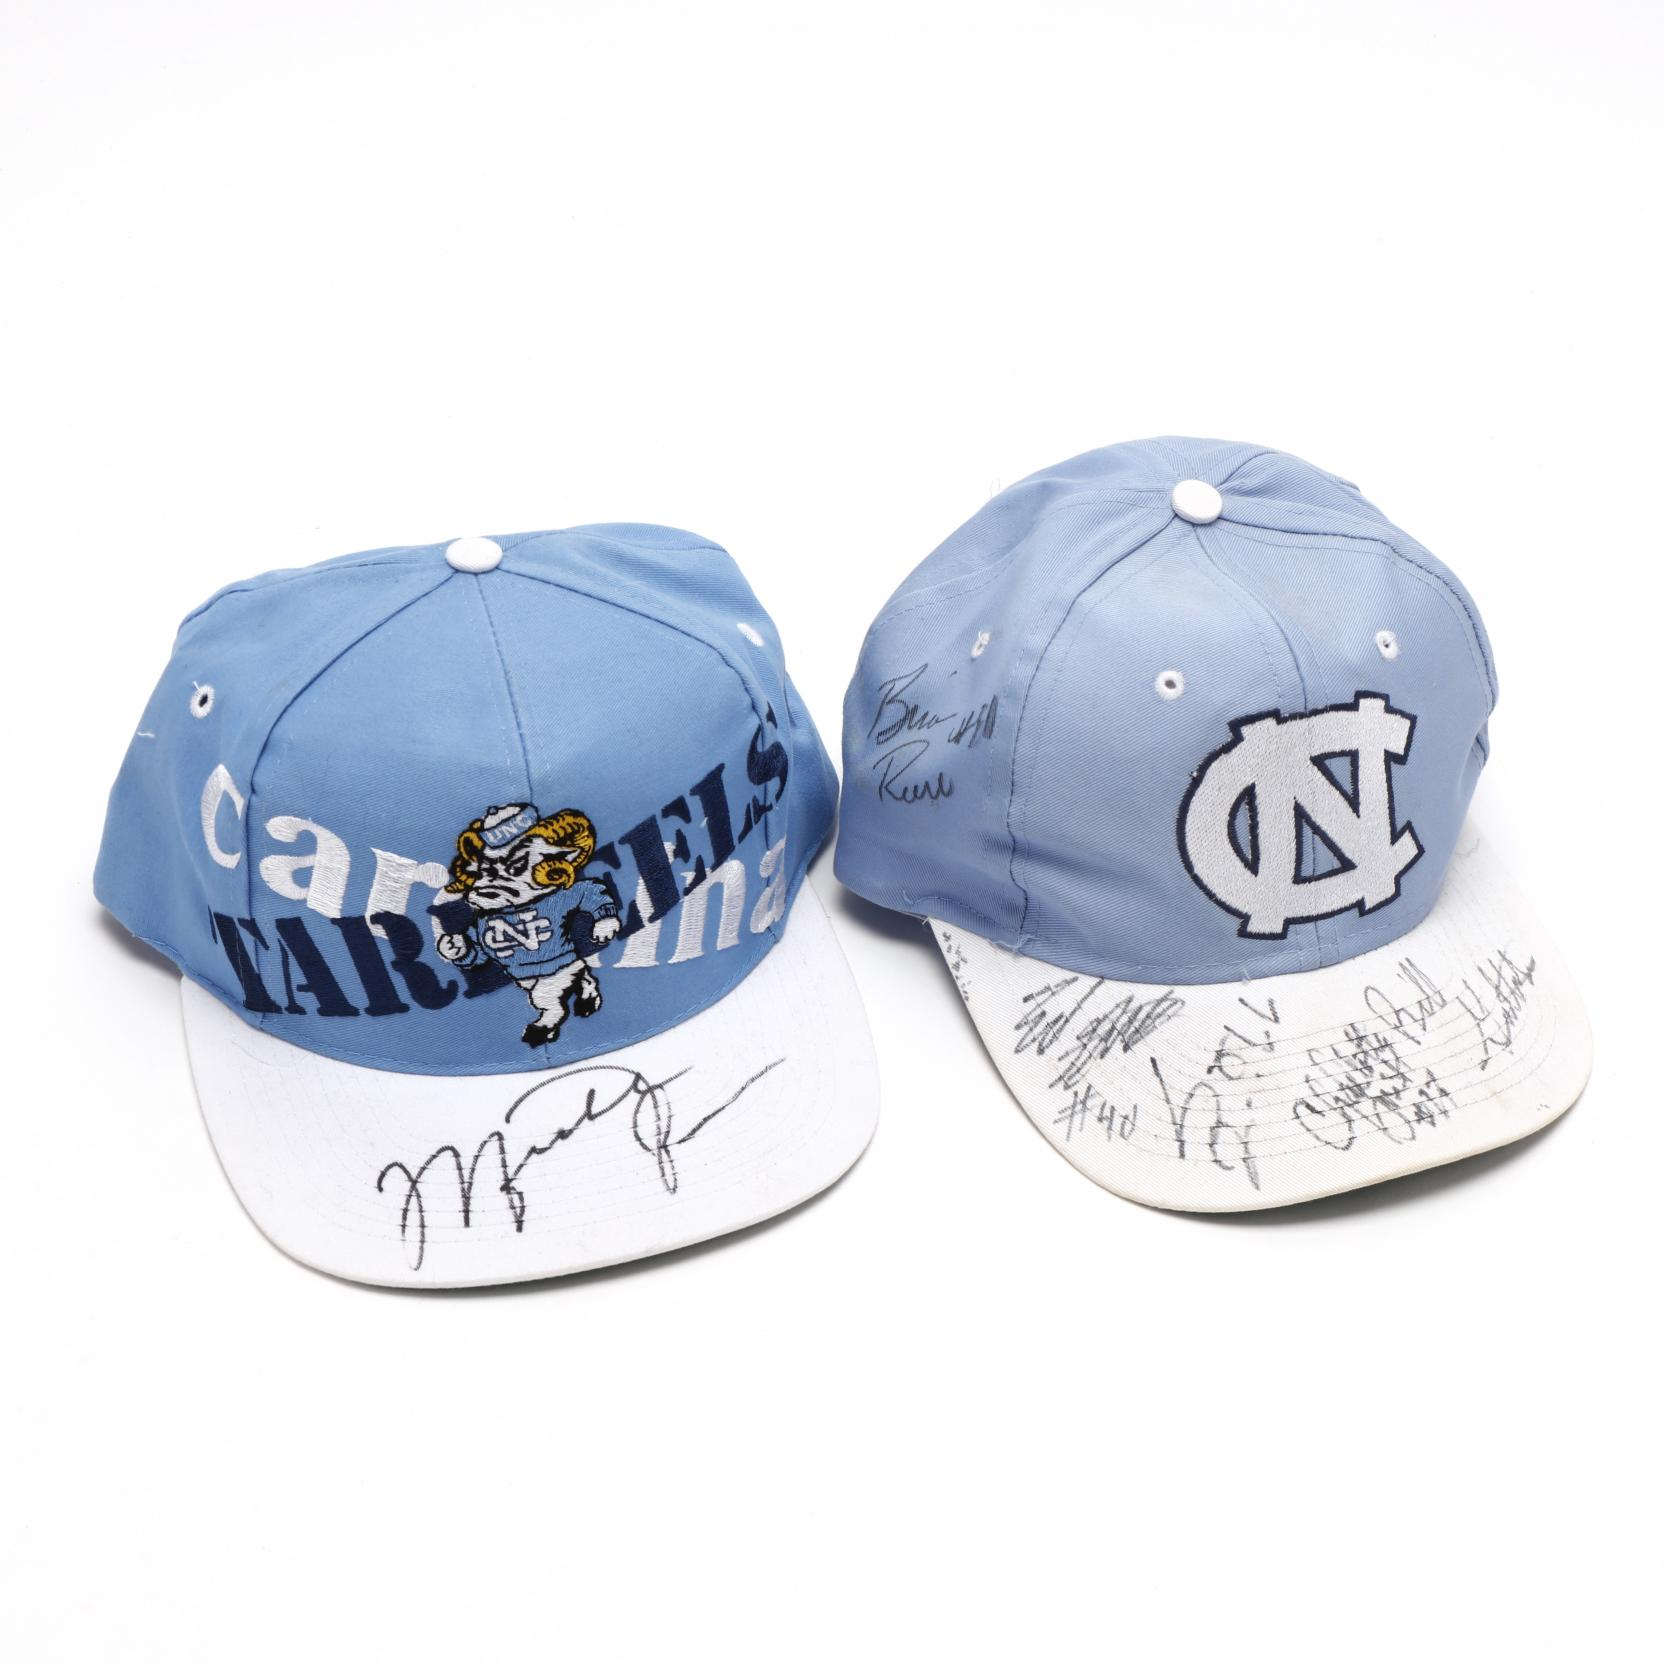 two-hand-signed-unc-basketball-caps-one-by-michael-jordan